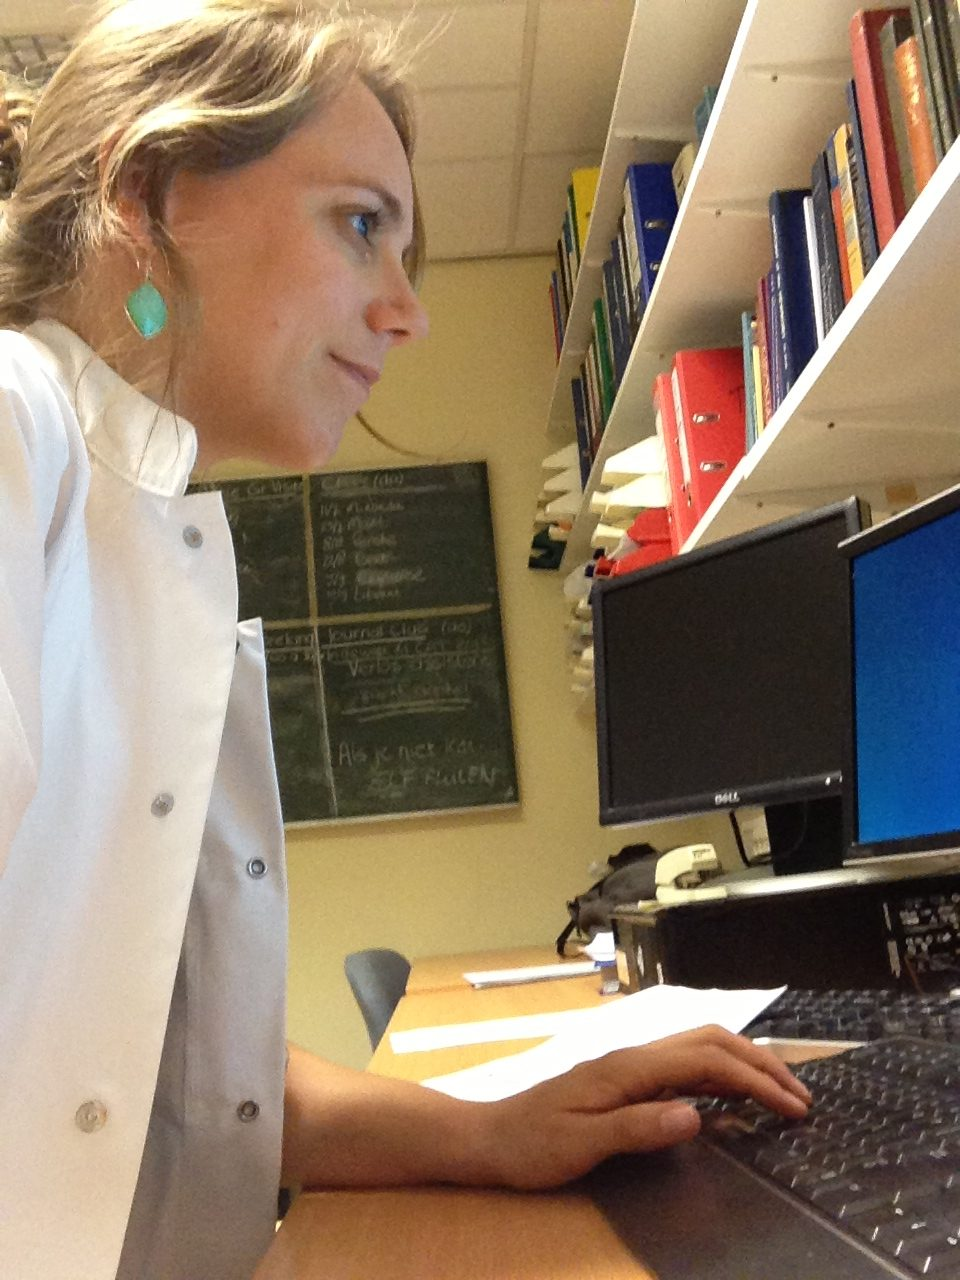 Photo 1: Miranda at work in the Erasmus MC as paediatrics resident.